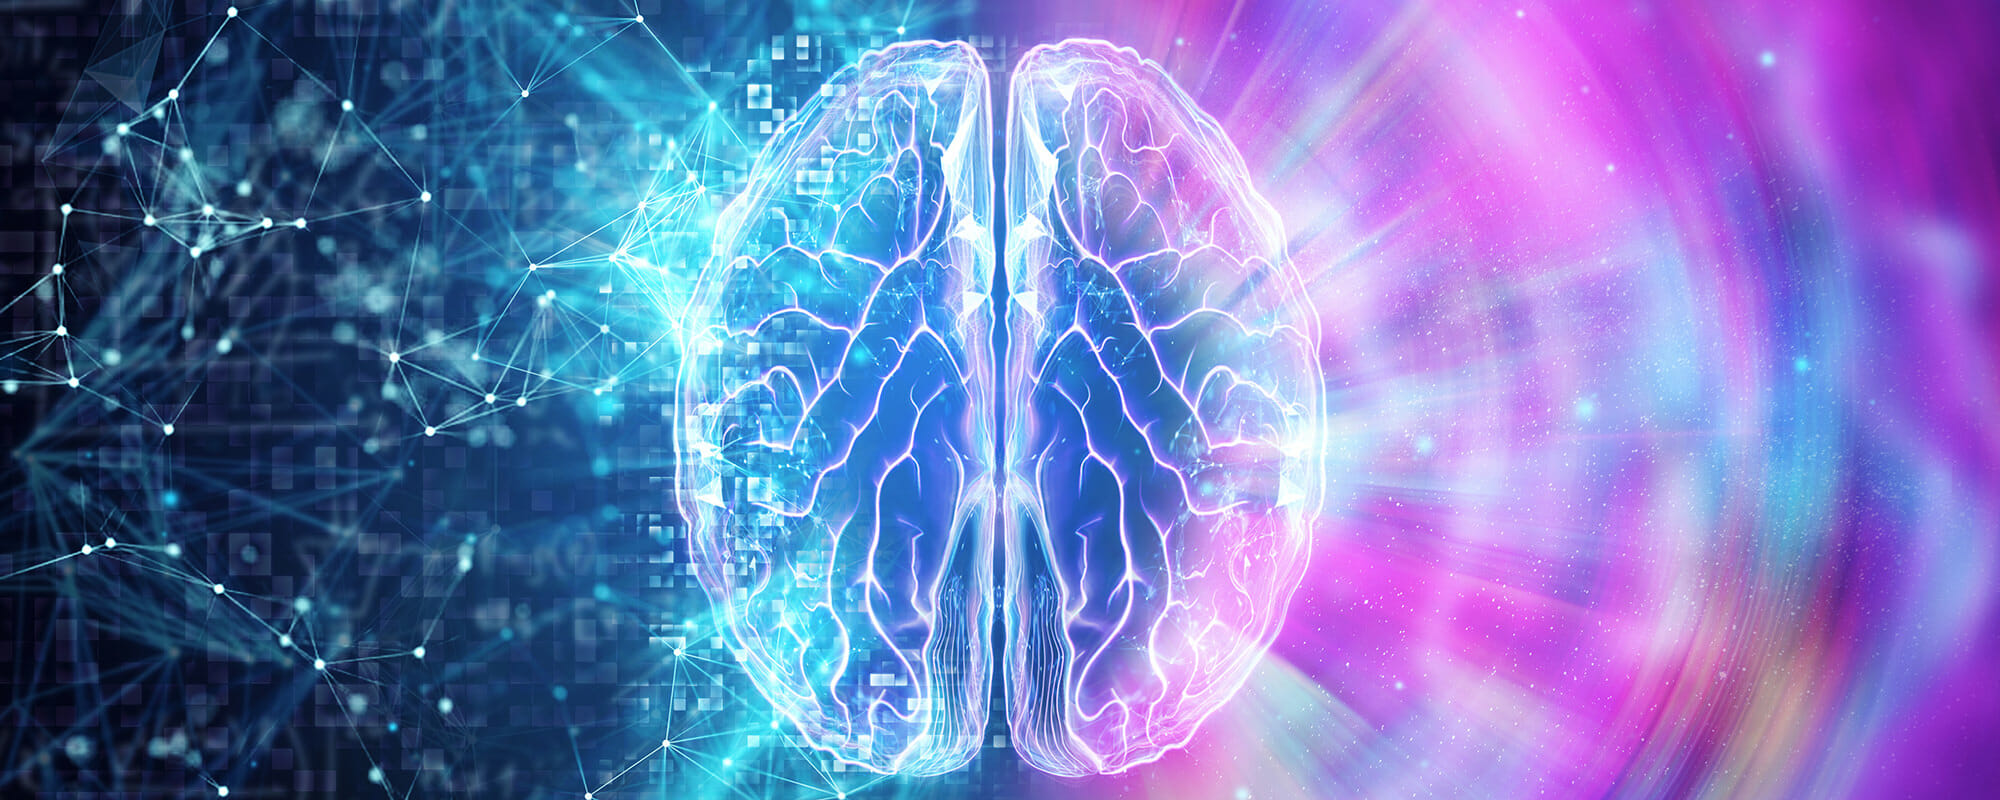 Vector image of brain showing data being processed